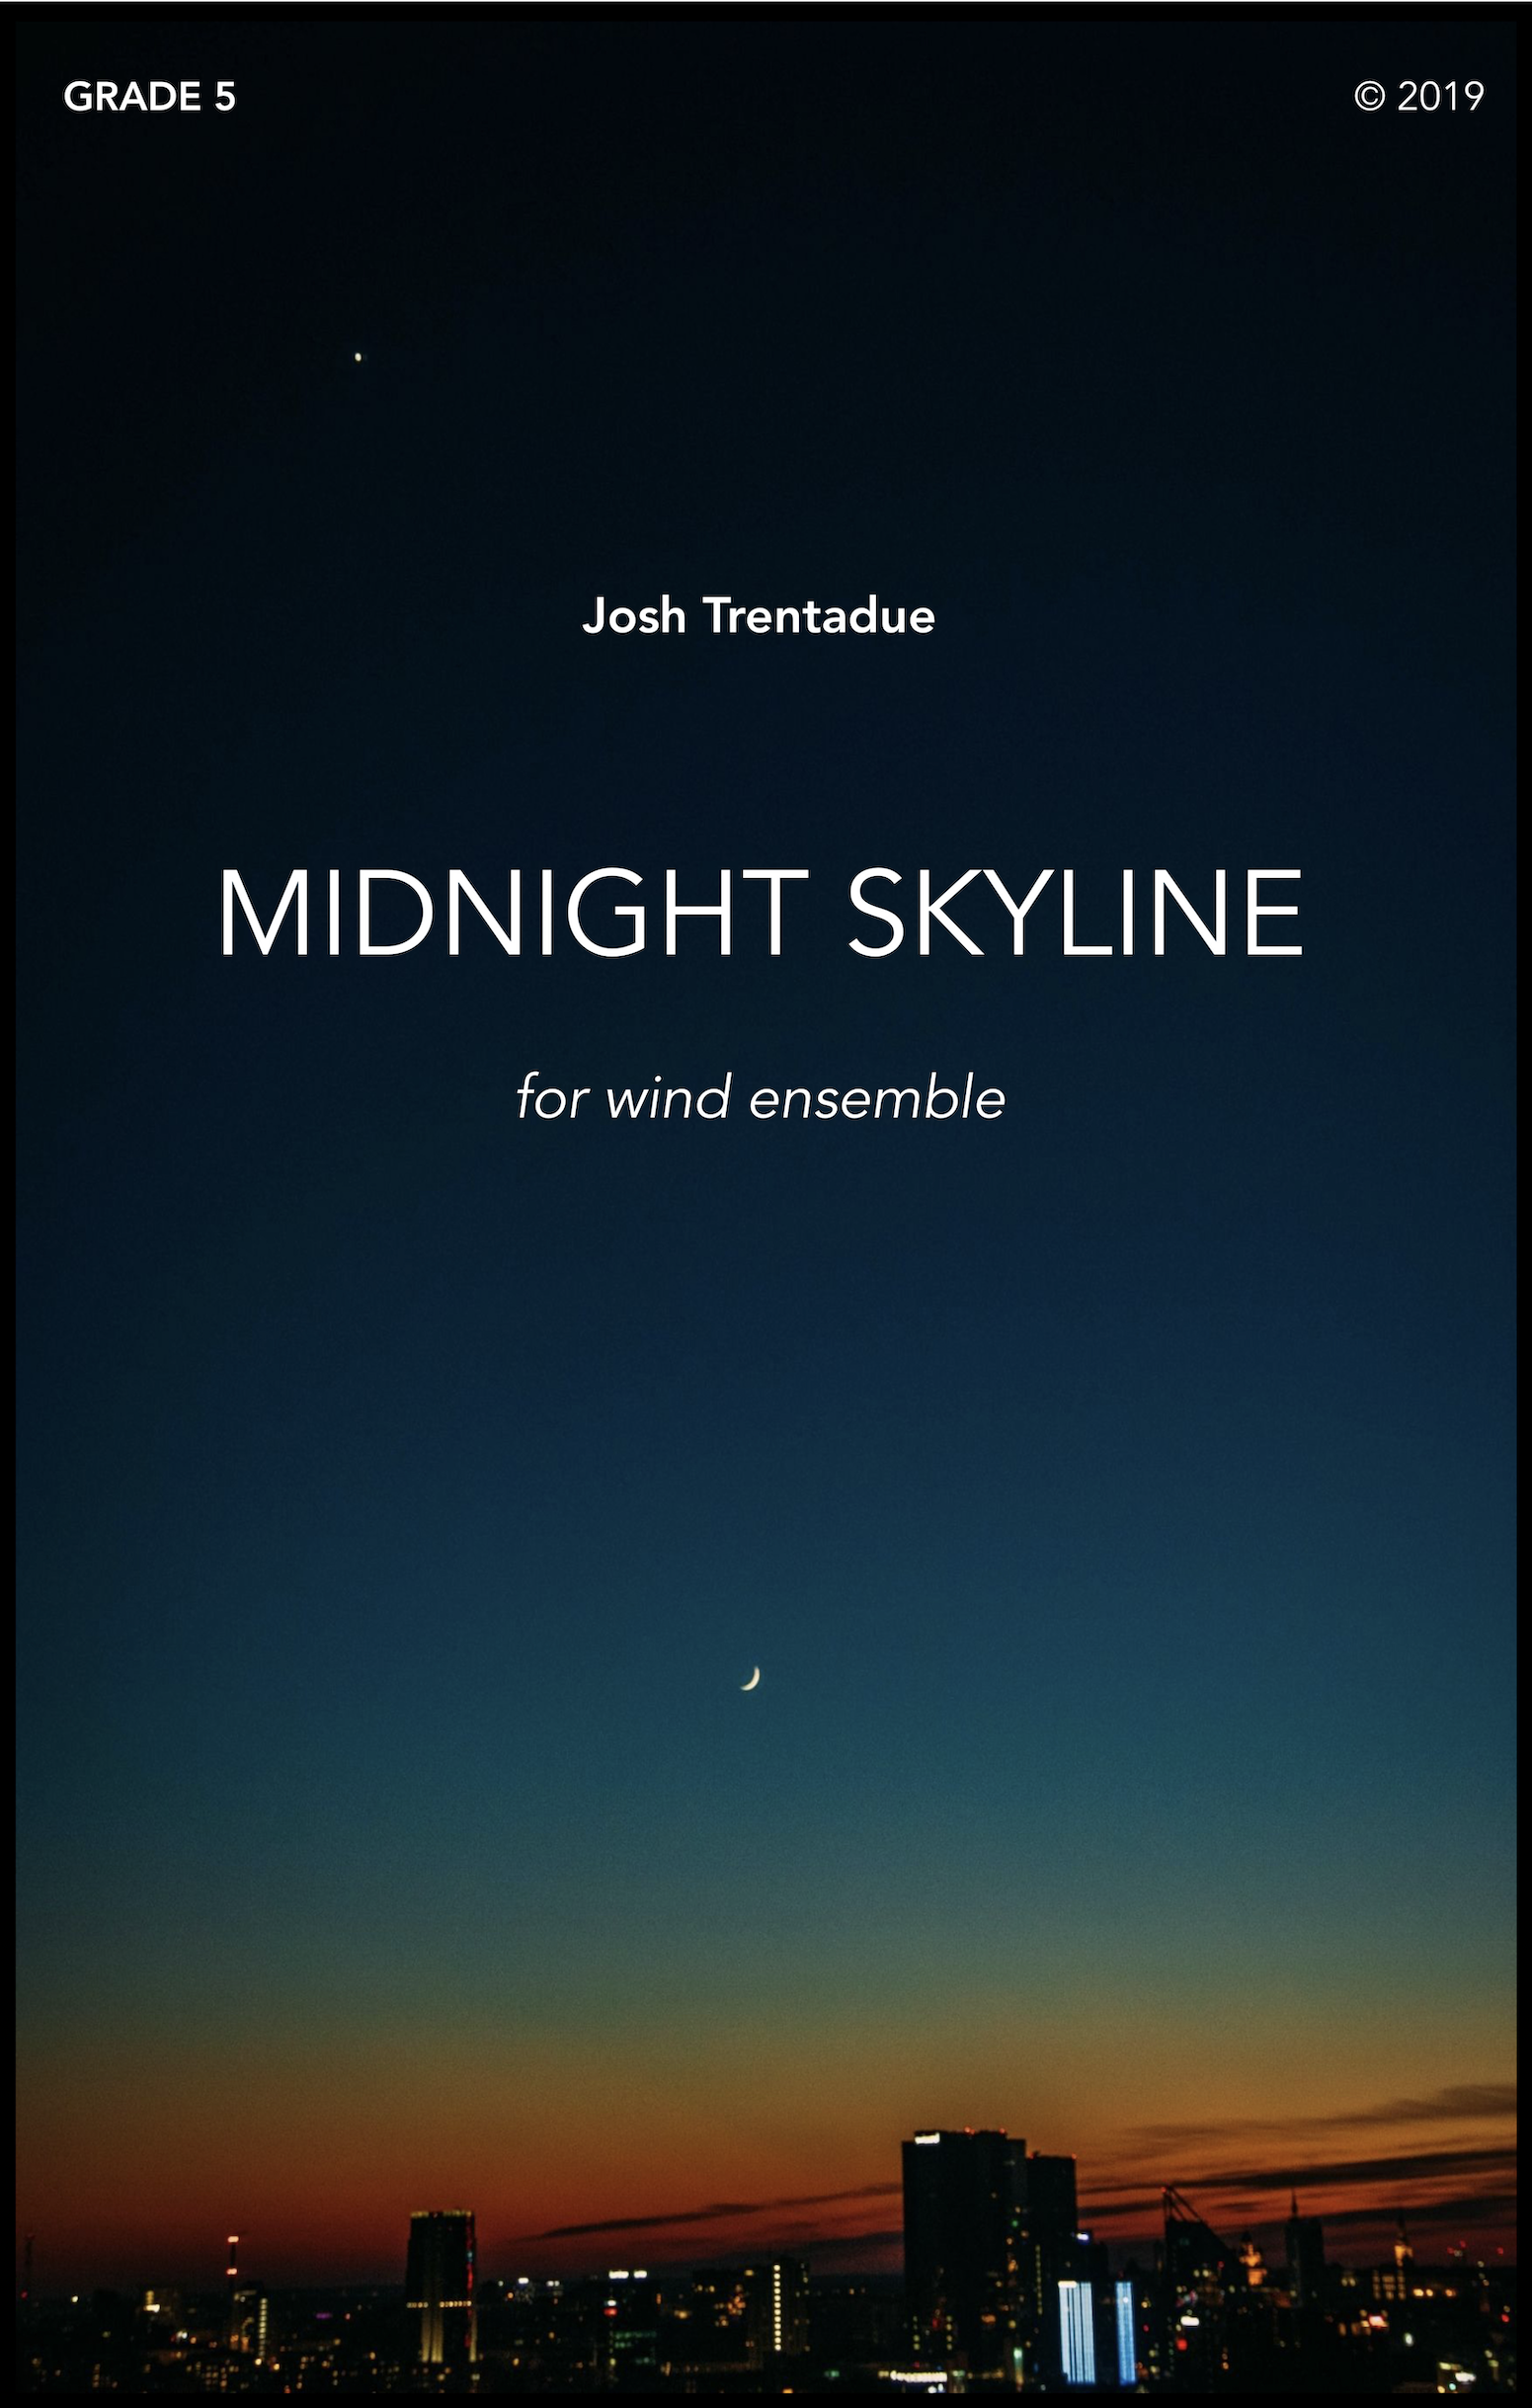 Midnight Skyline by Josh Trentadue